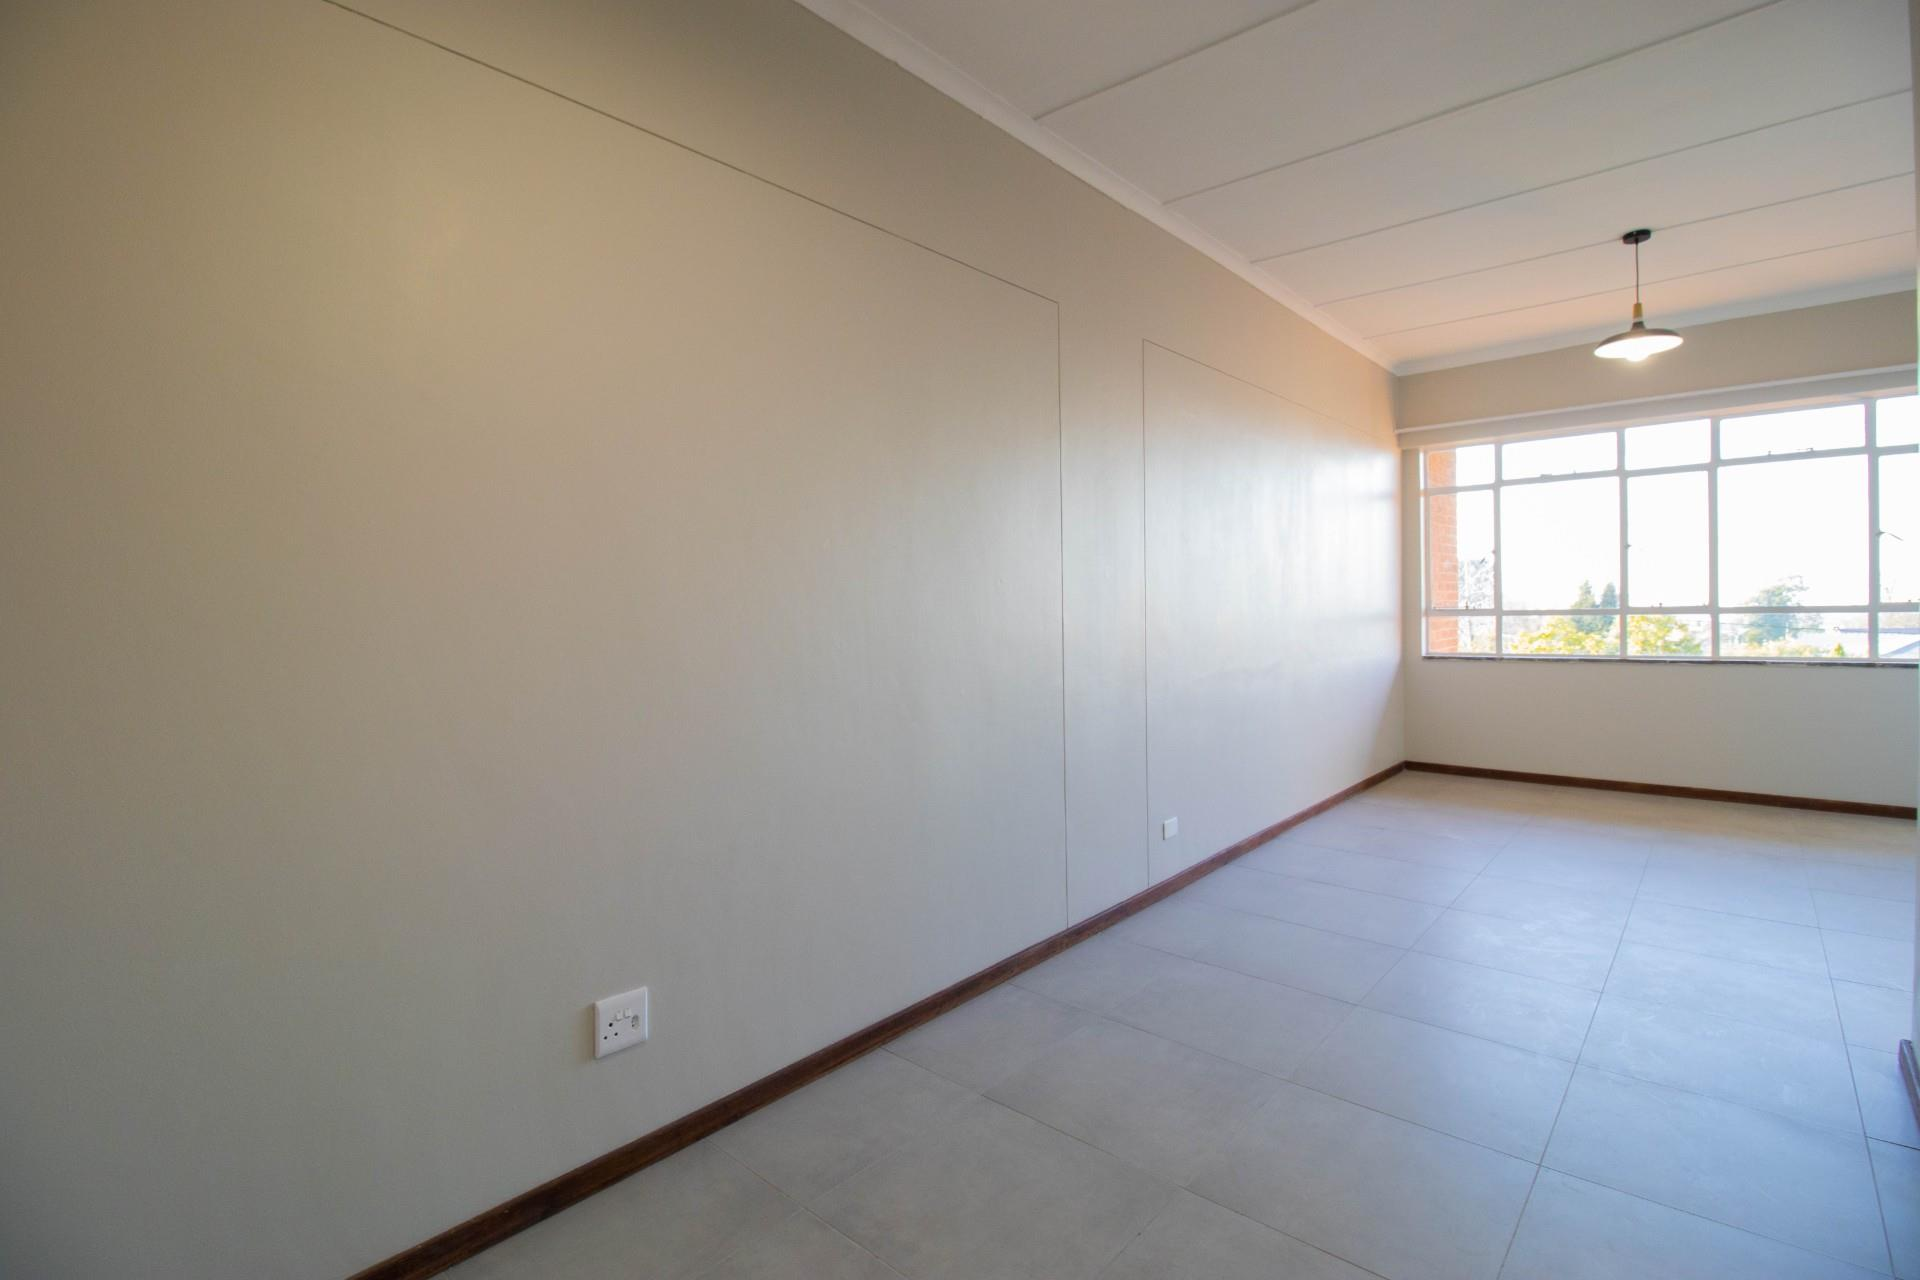 1.5 Bedroom Apartment / Flat To Rent in Witpoortjie